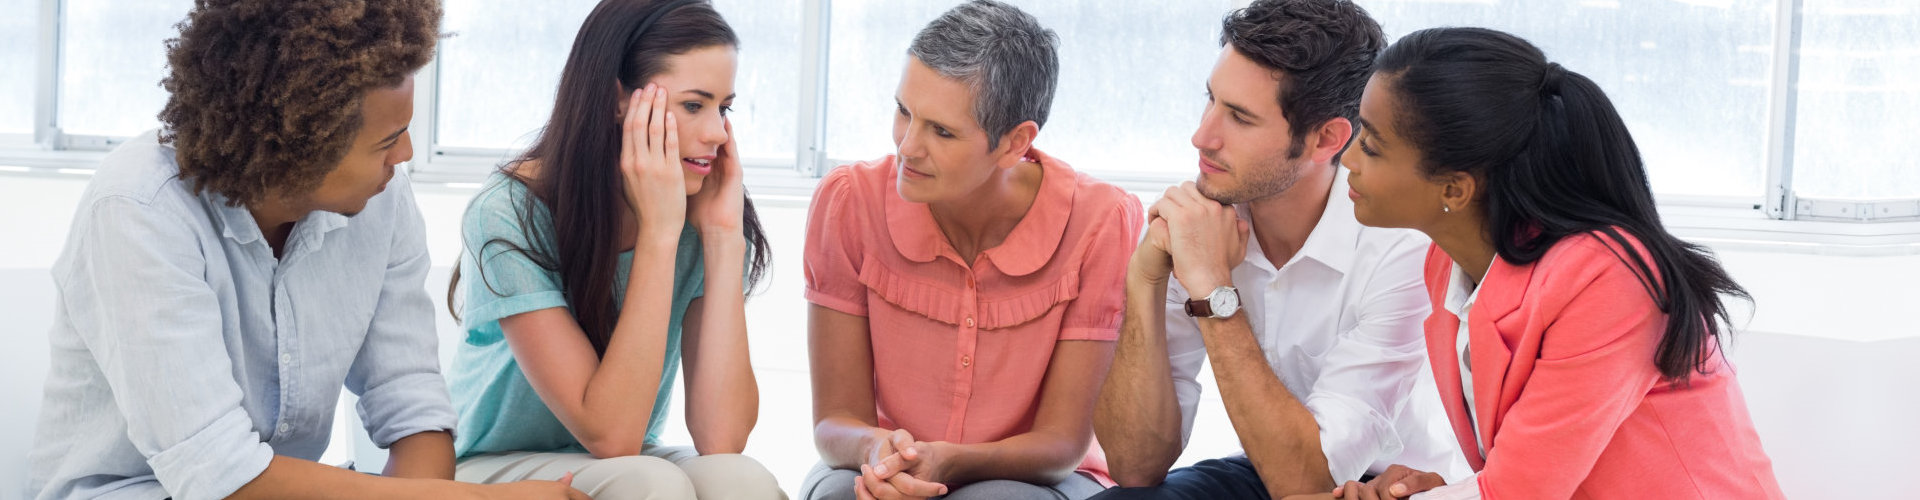 psychiatrist having group counseling